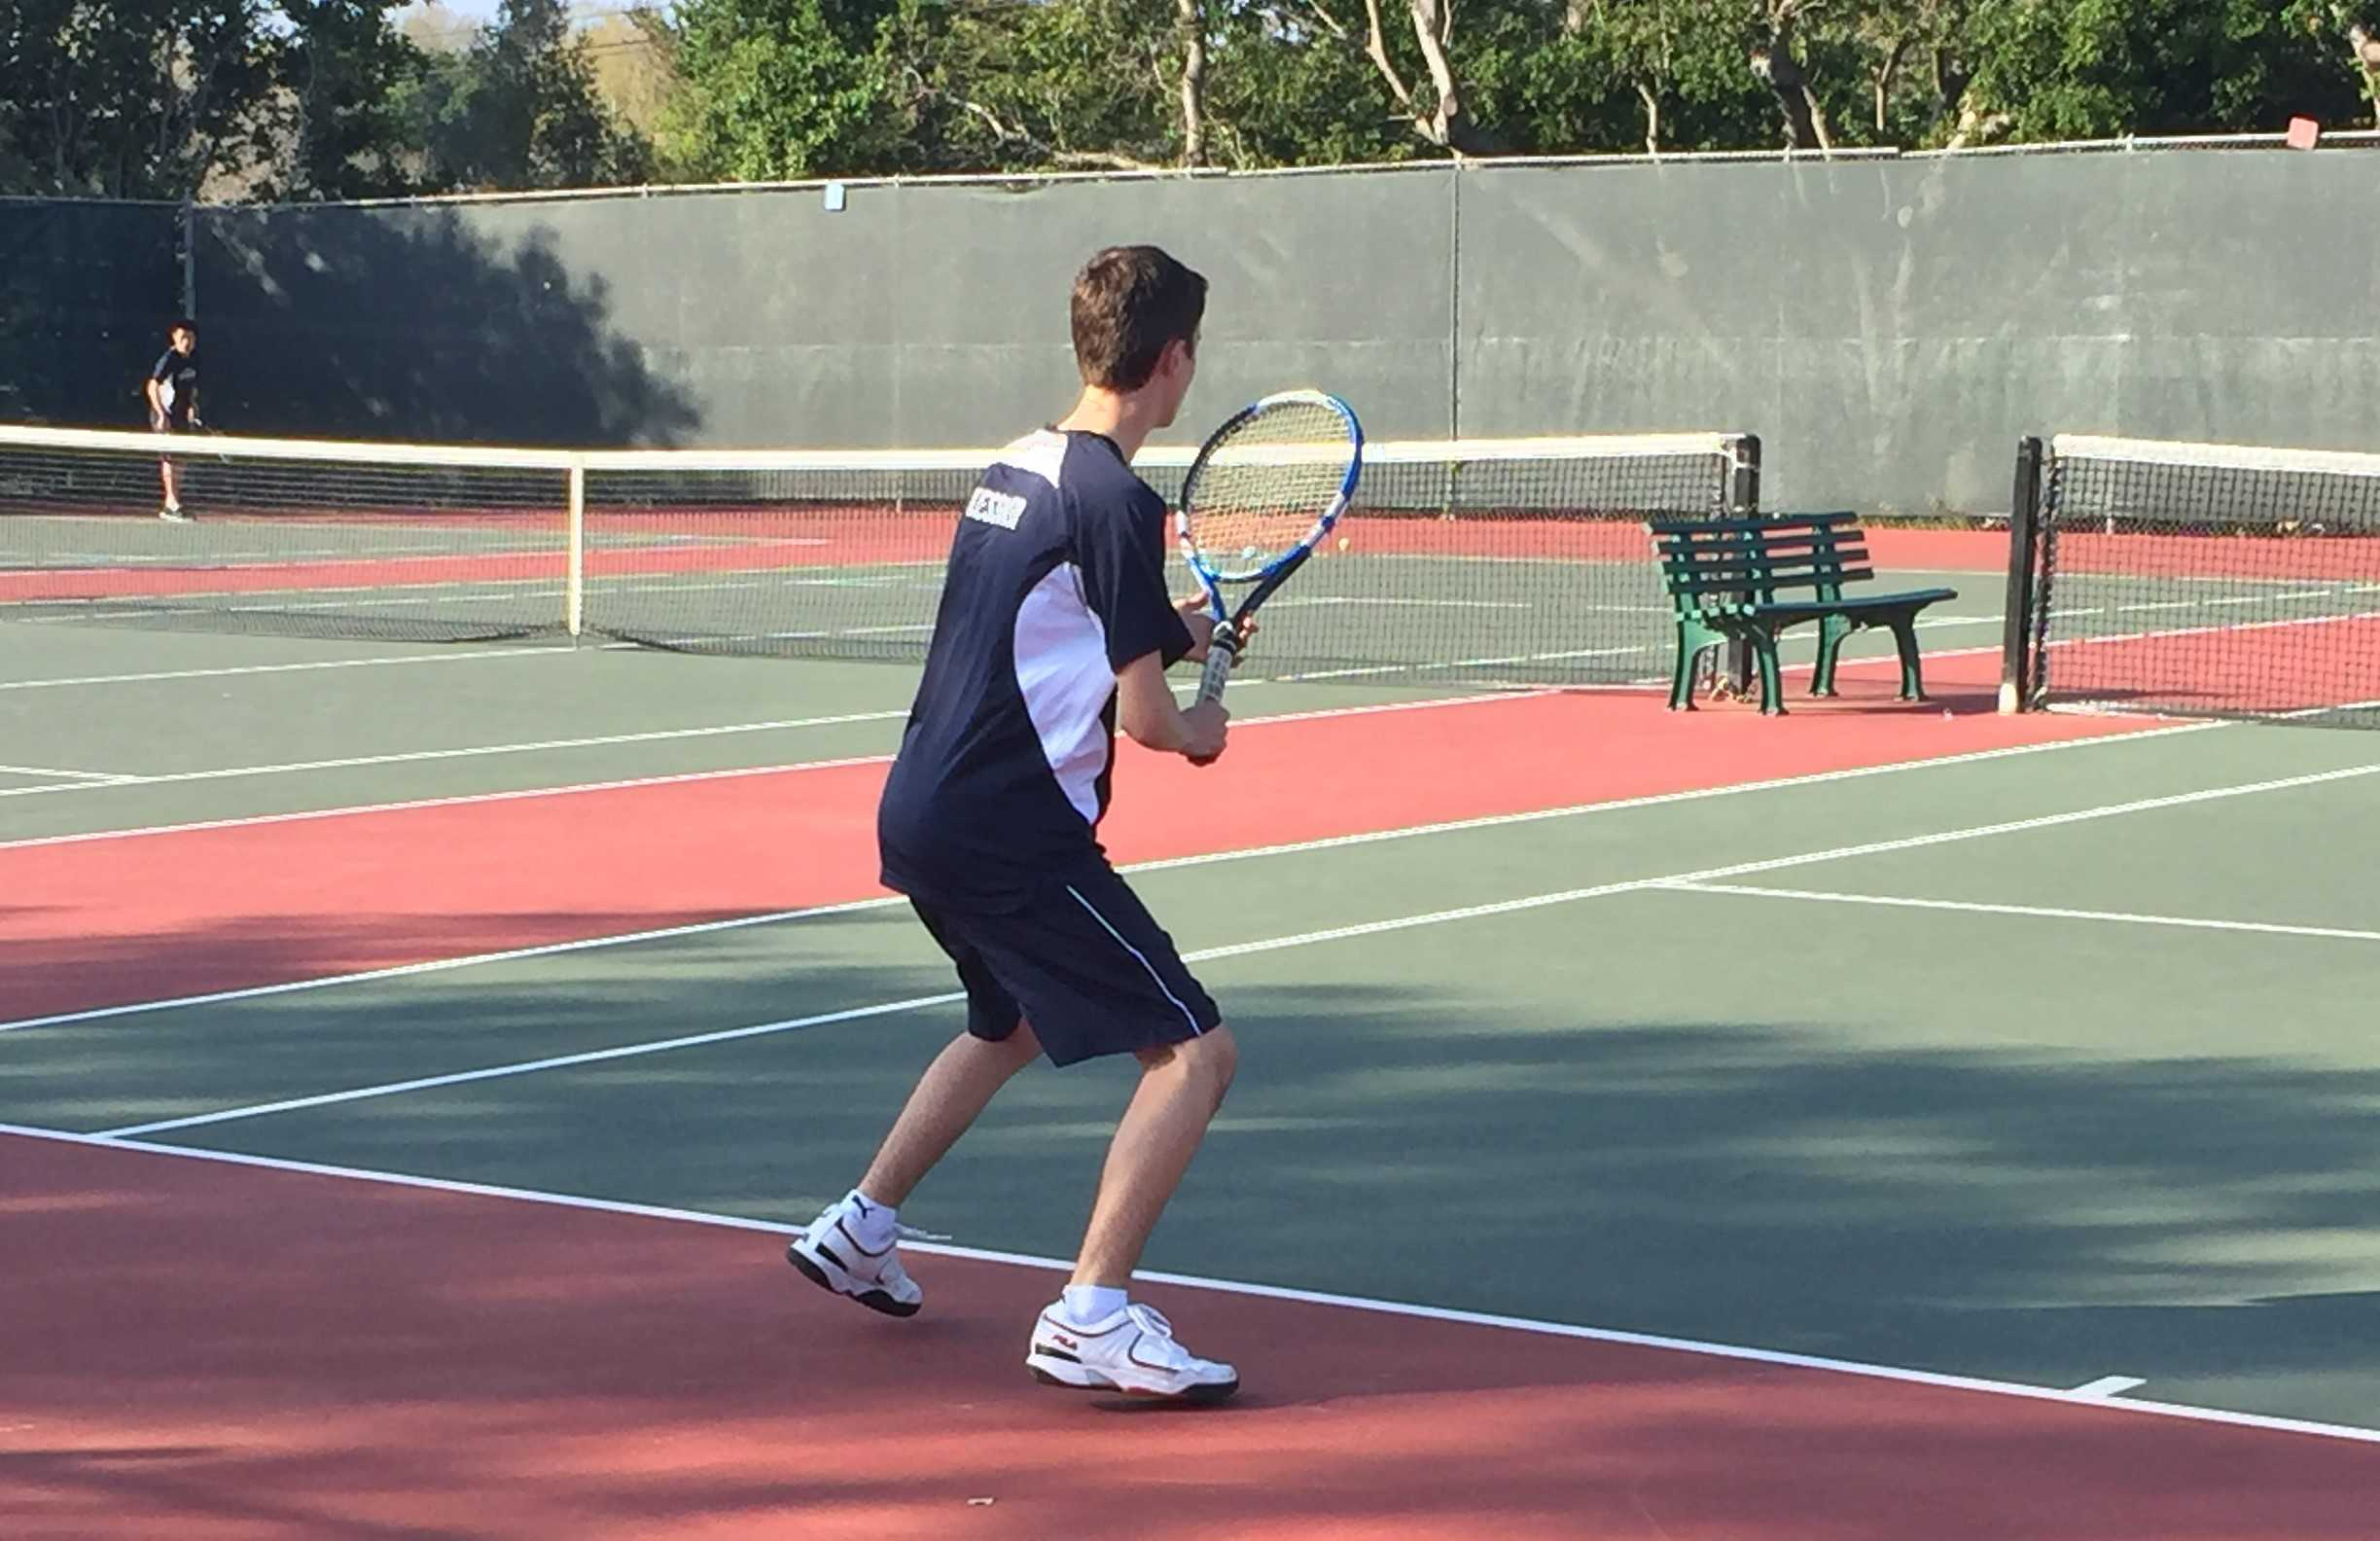 Doubles player Alexander Kessler, a junior, prepares to return his opponent's serve.